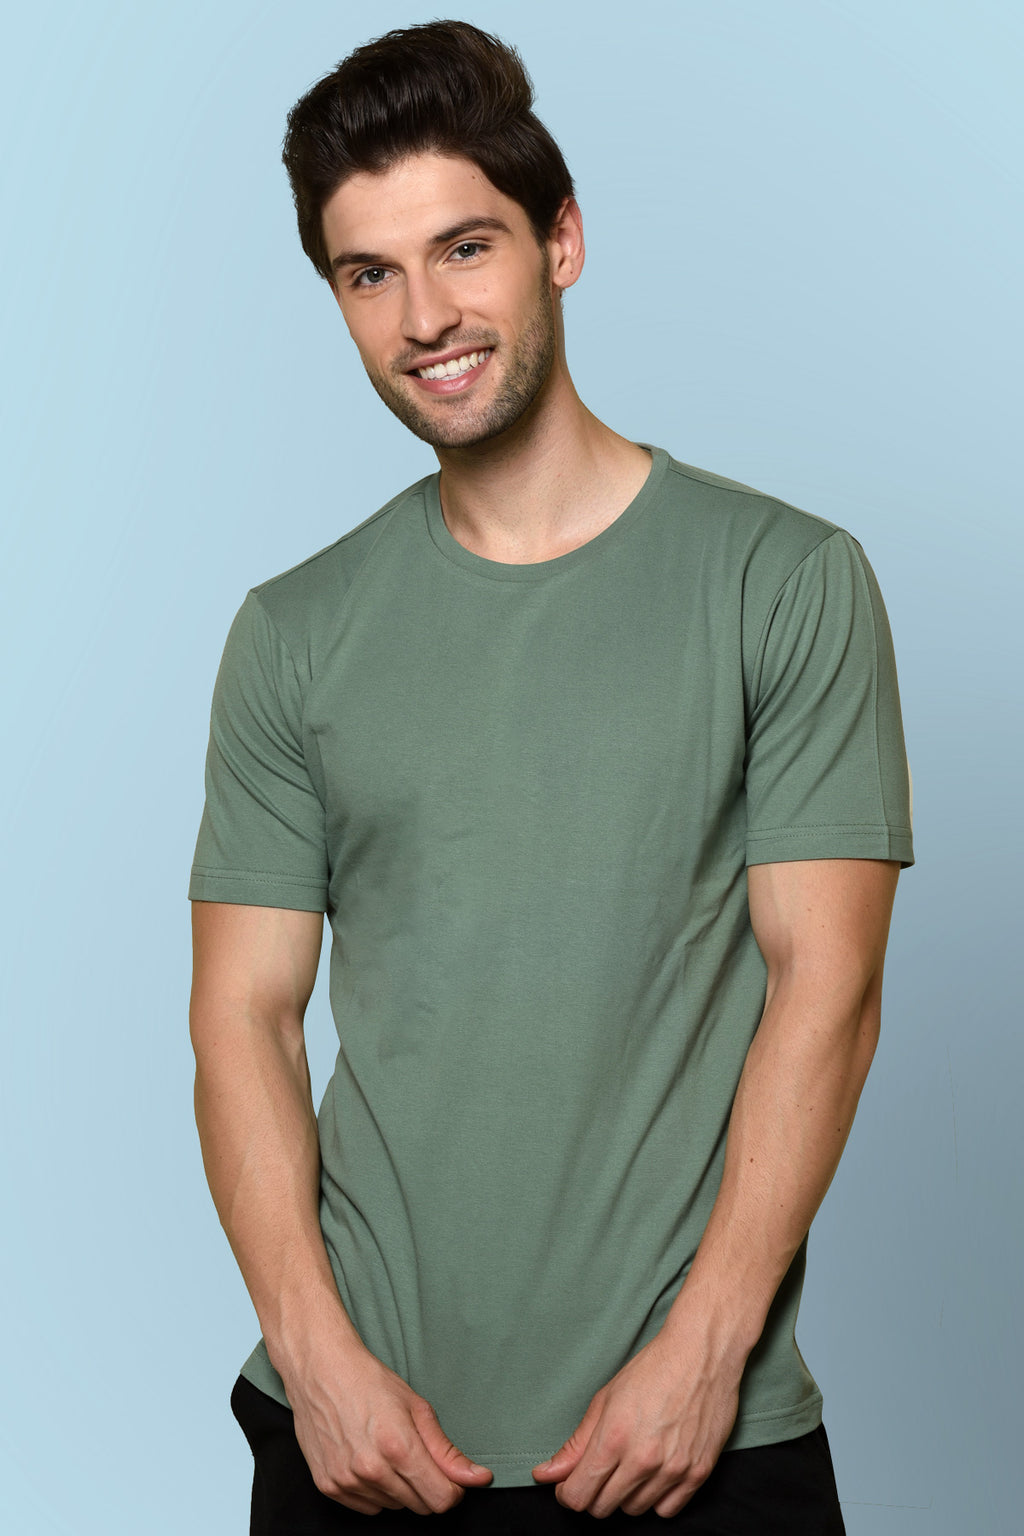 Smoky Green T-shirt by Beyours